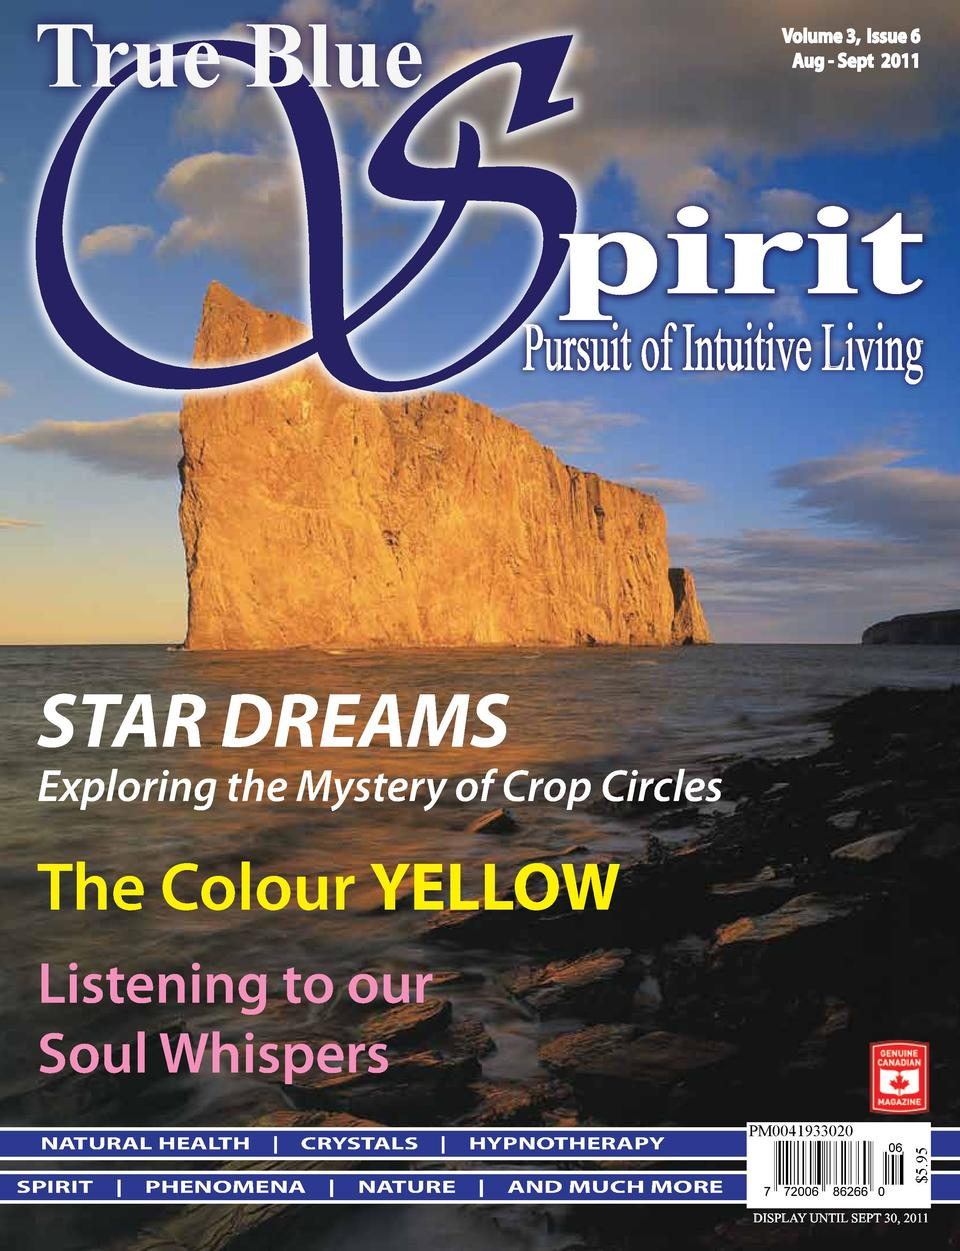 S True Blue  Volume 3, Issue 6 Aug - Sept 2011  pirit  Pursuit of Intuitive Living  STAR DREAMS  Exploring the Mystery of ...